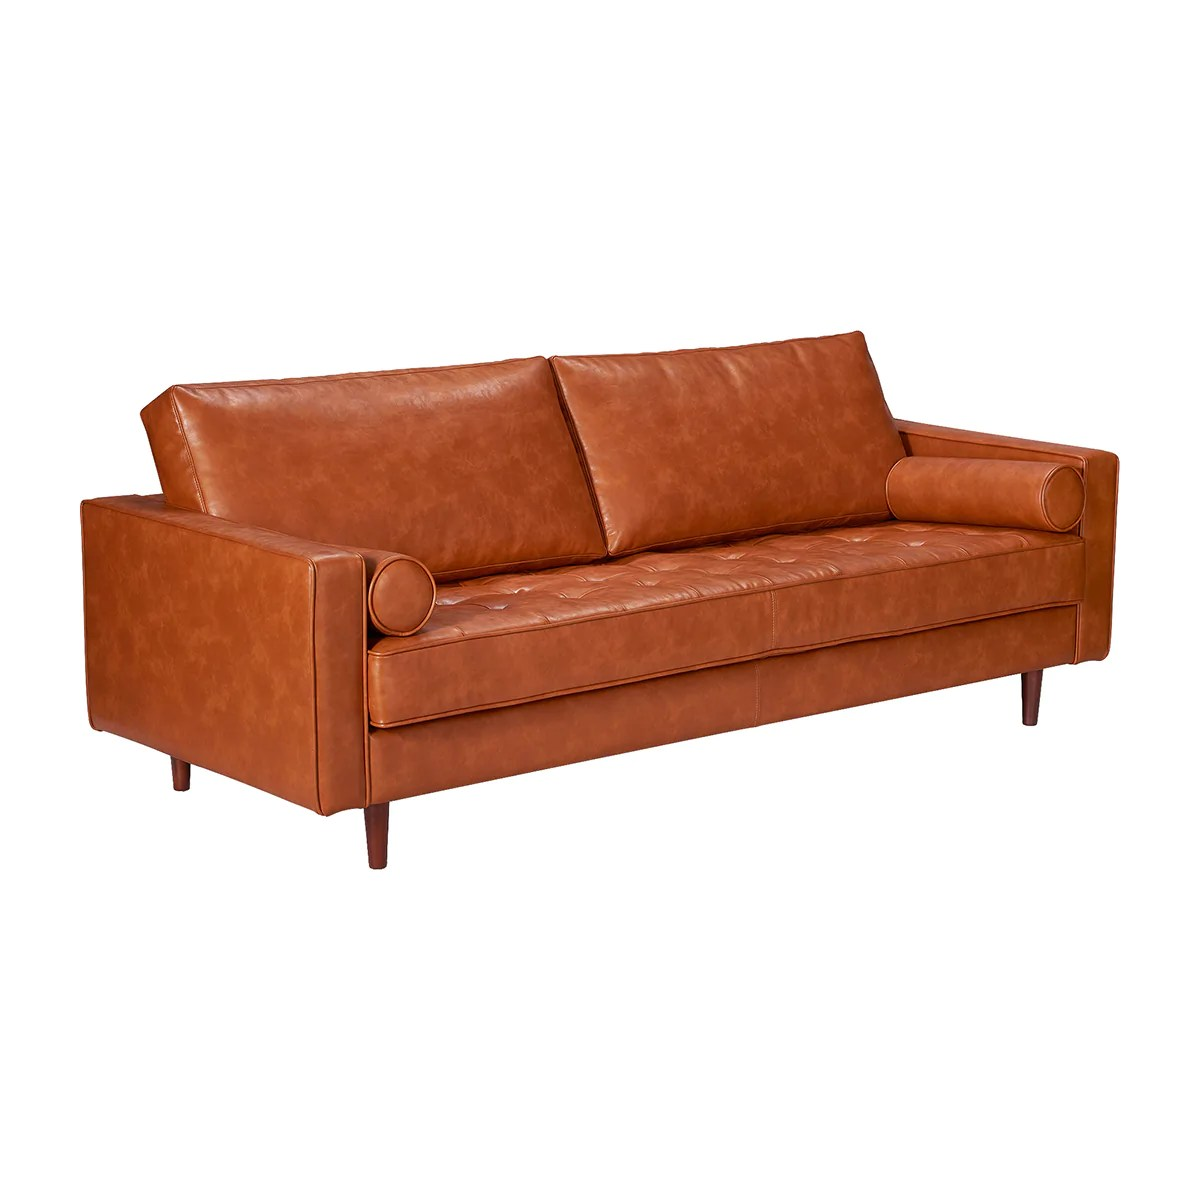 Life Interiors Buy Harper 3 Seater Leather Sofa Furniture Online Or In Store